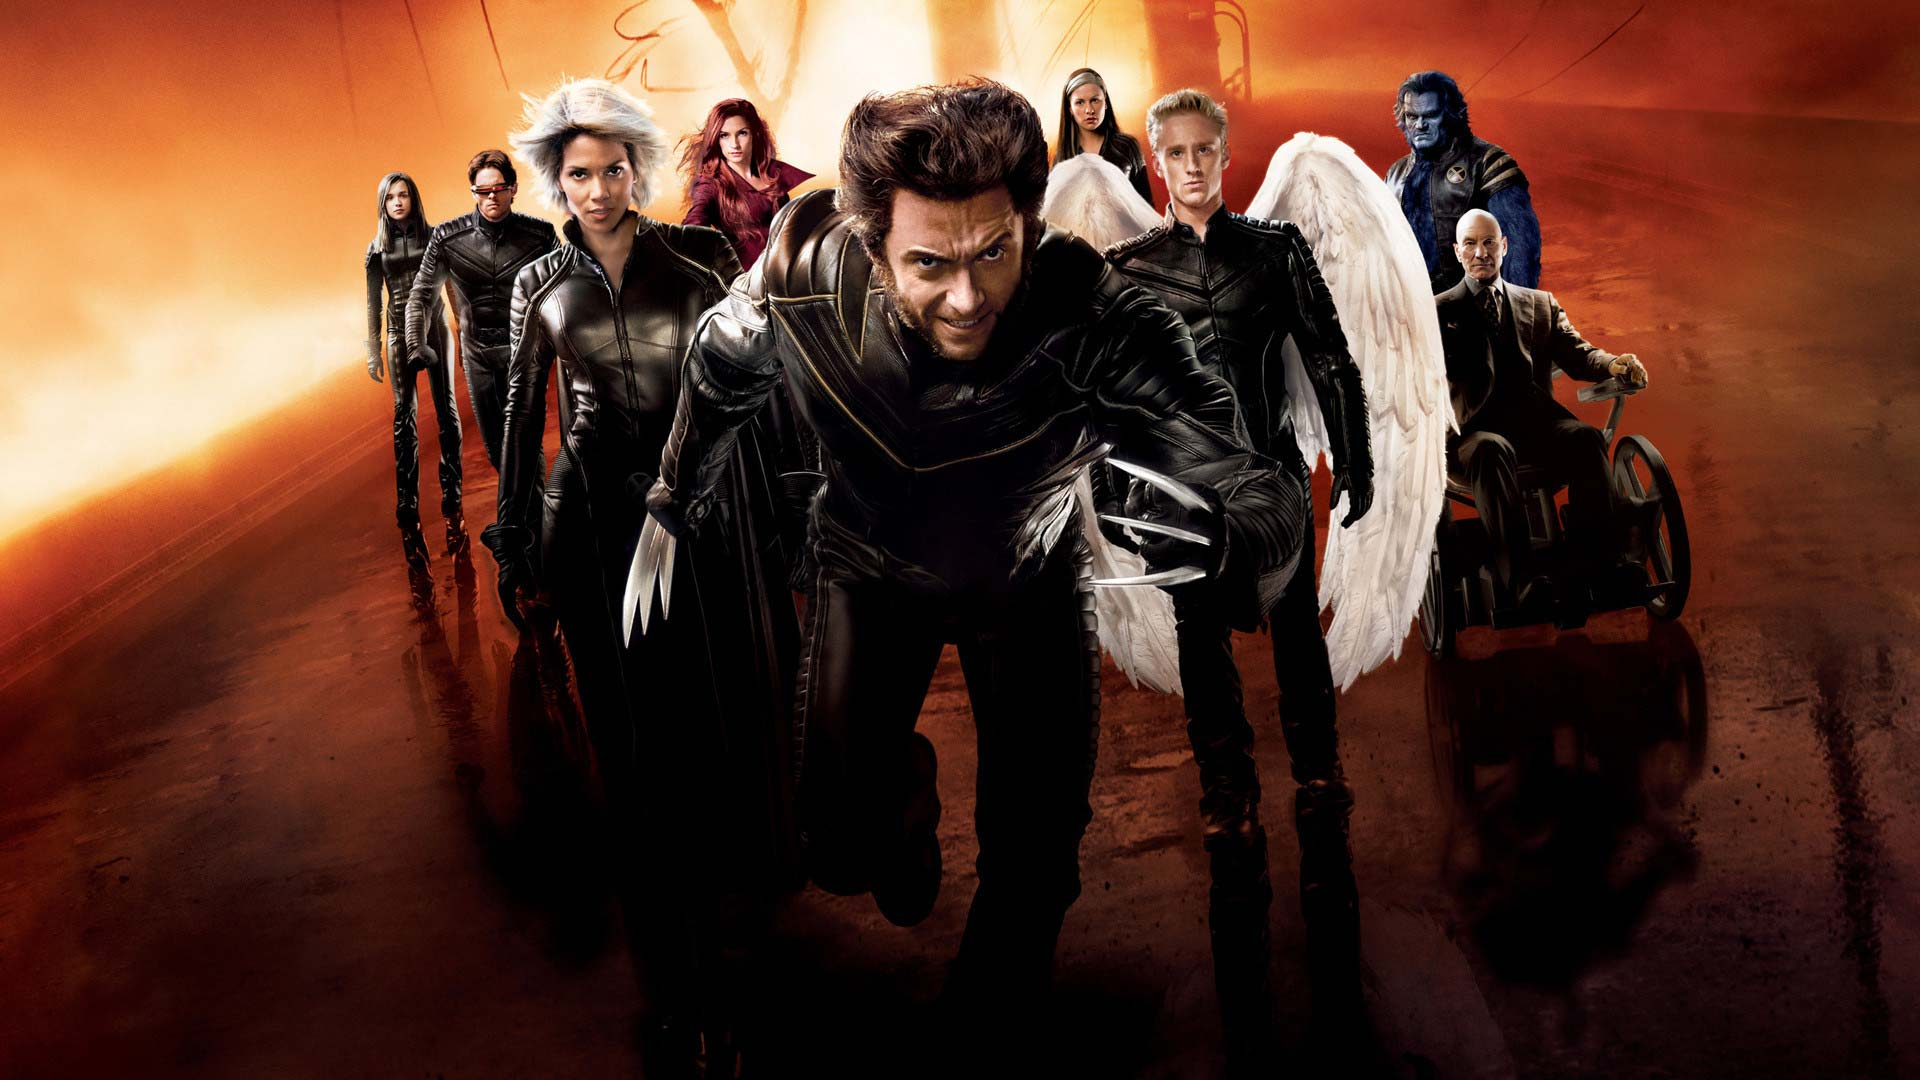 X Men Movie Wallpaper HD